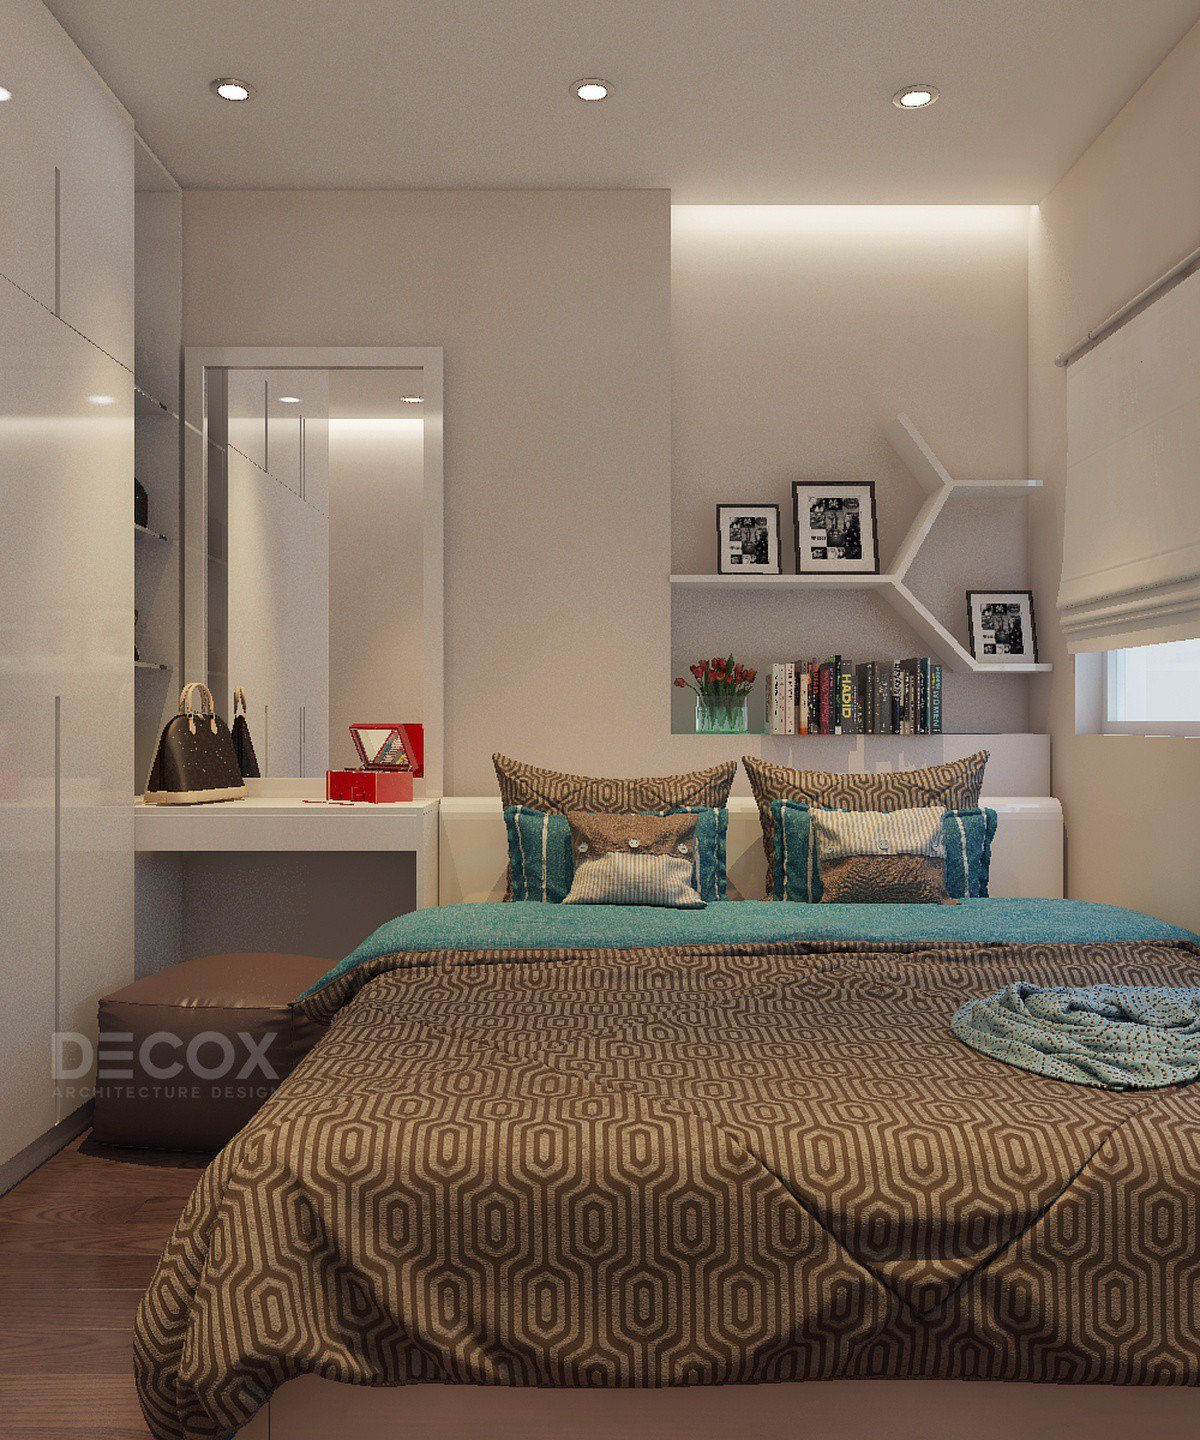 thiet-ke-noi-that-can-ho-useful-apartment-68m2-07-decox-design